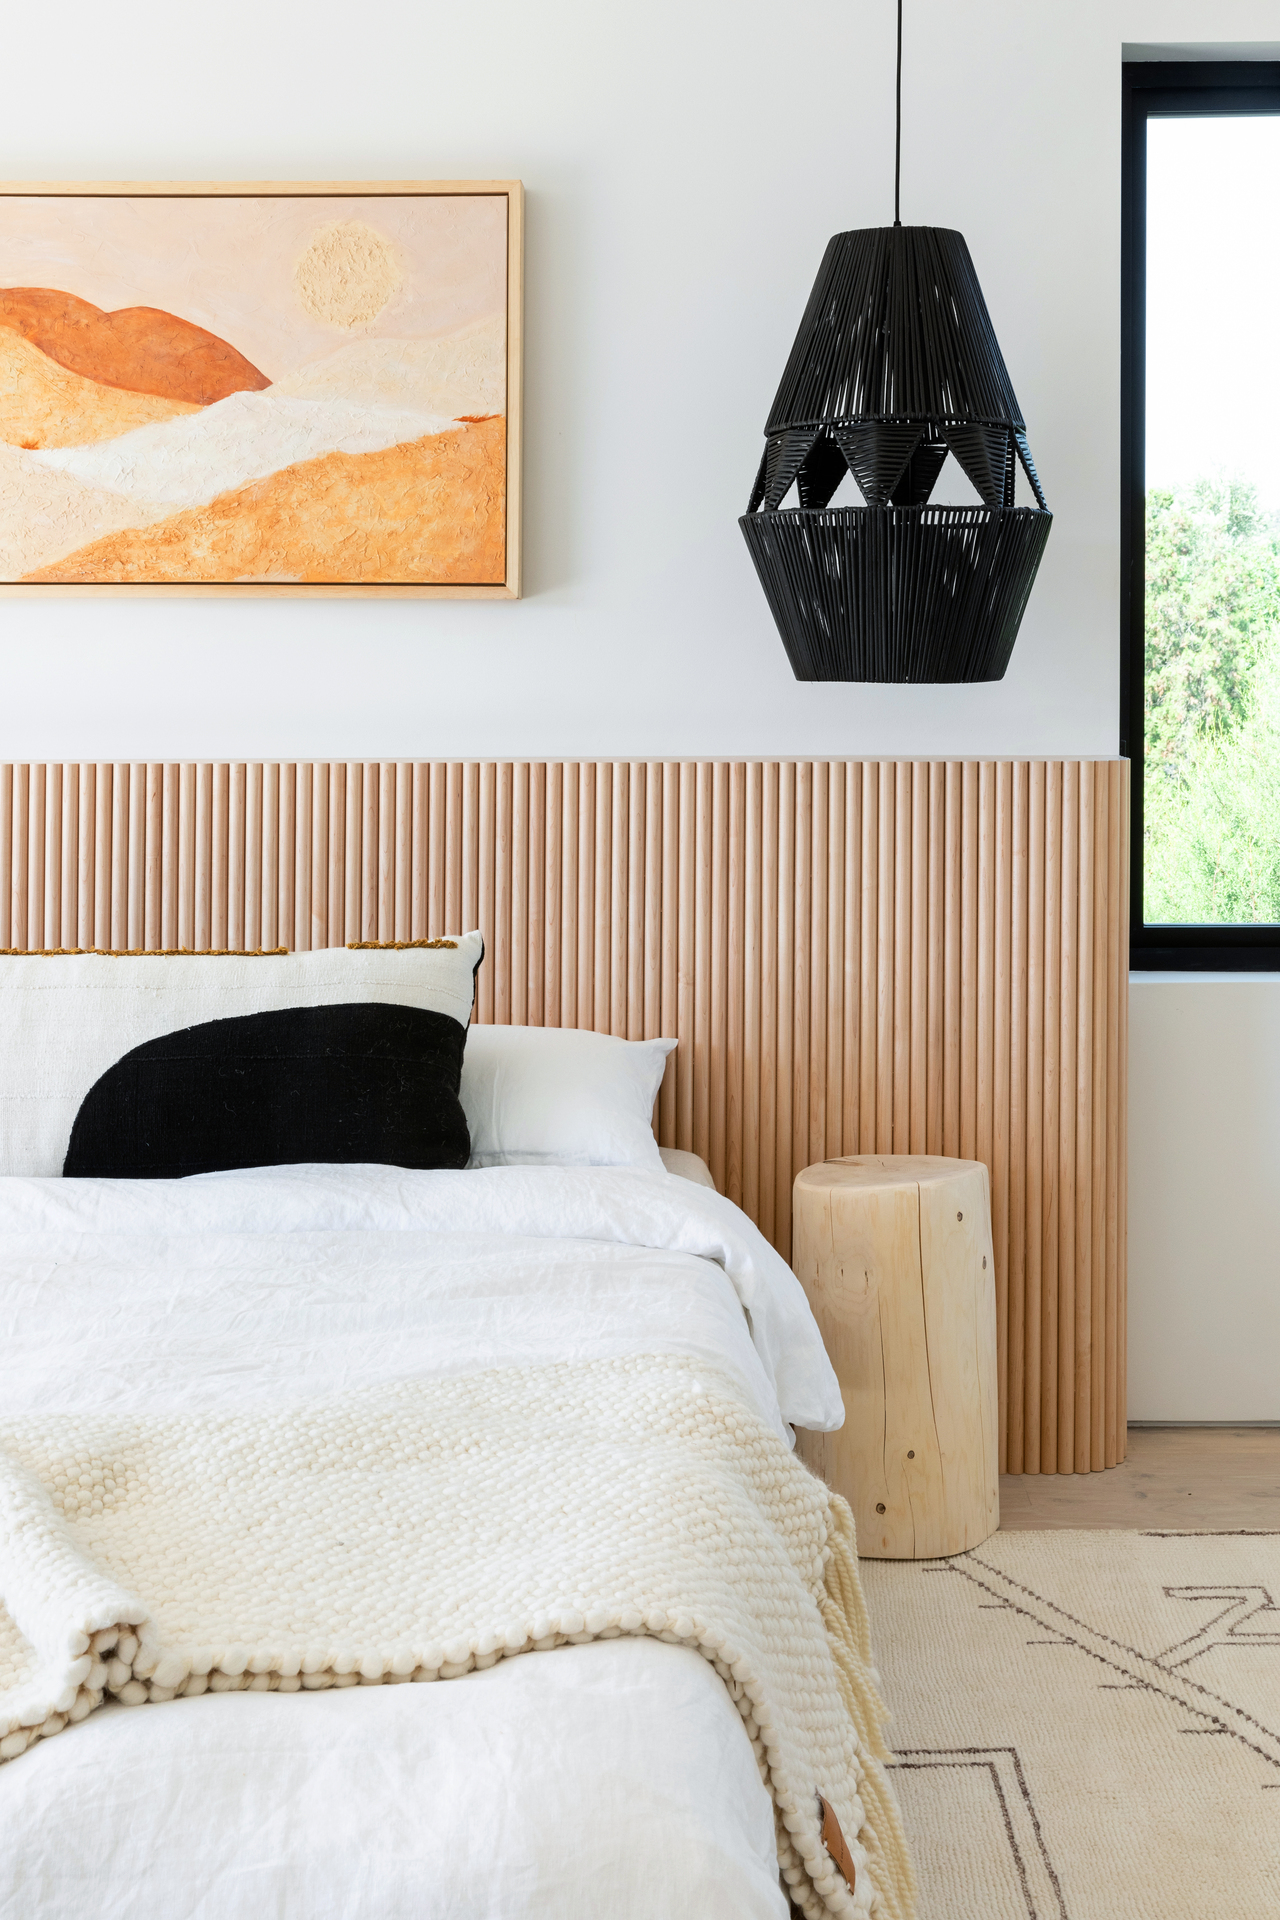 The solid Tambour Wood was used as a headboard in this beautiful bedroom design.